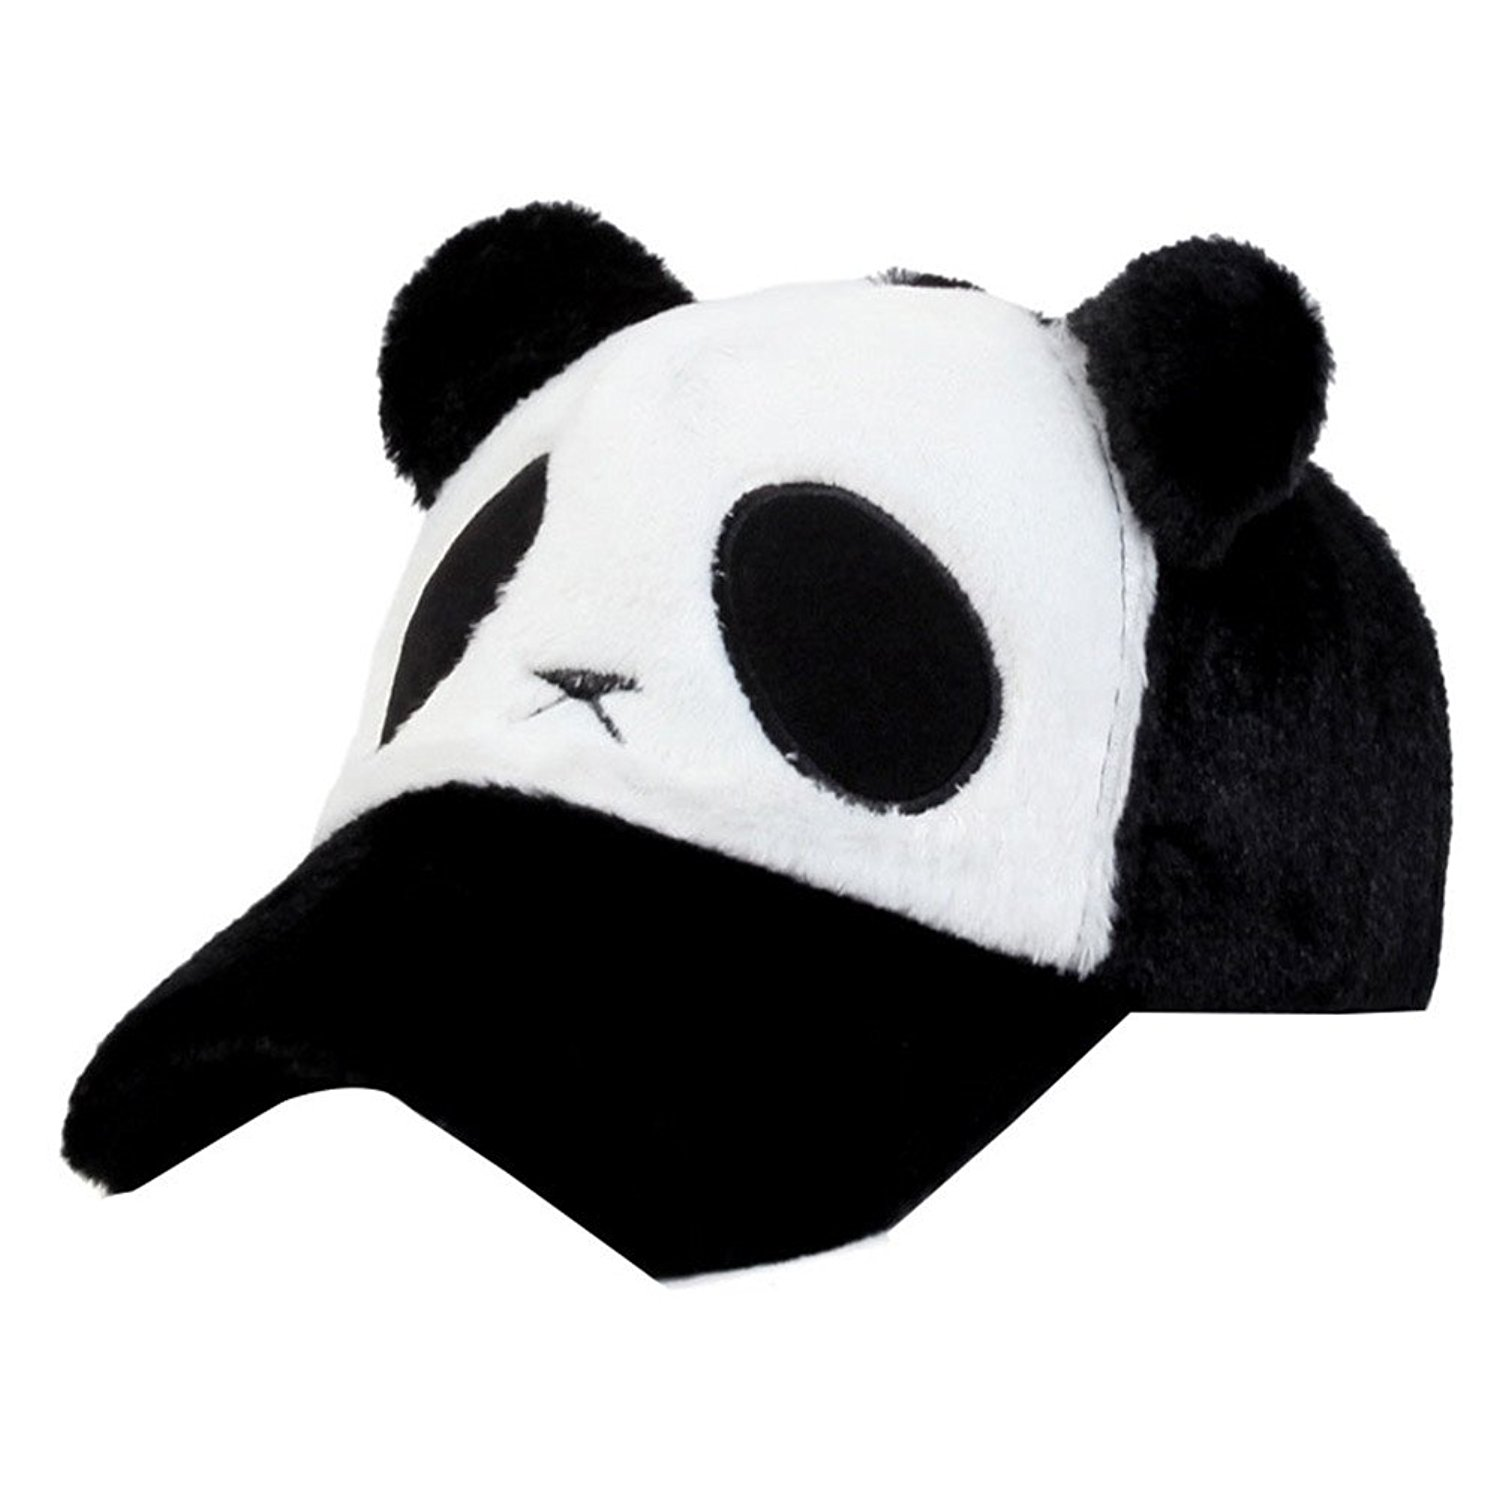 243755763f0552 Get Quotations · FUNY Women Panda Bear with Ears Baseball Hat Cap Winter  Warm Caps